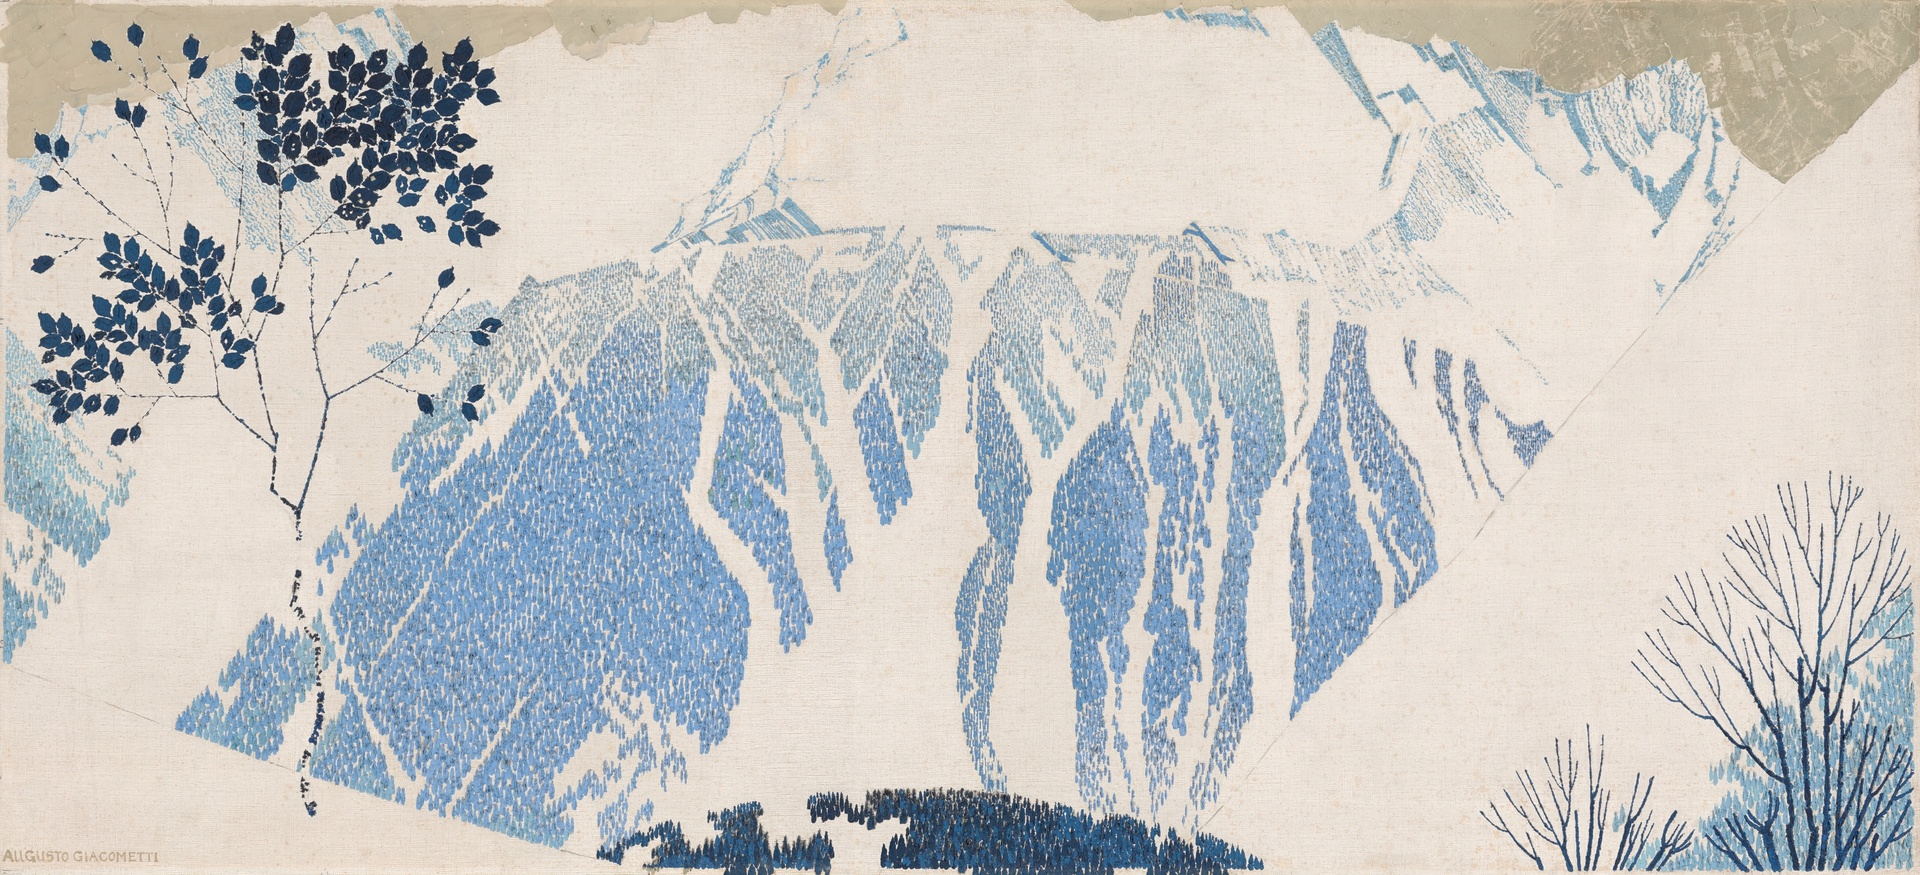 Augusto Giacometti, Mountains, 1904, oil on canvas, wooden frame painted by the artist 82.2 x 179.8 cm signed lower left: Augusto Giacometti, signed and inscribed on the back of the frame: Augusto Giacometti